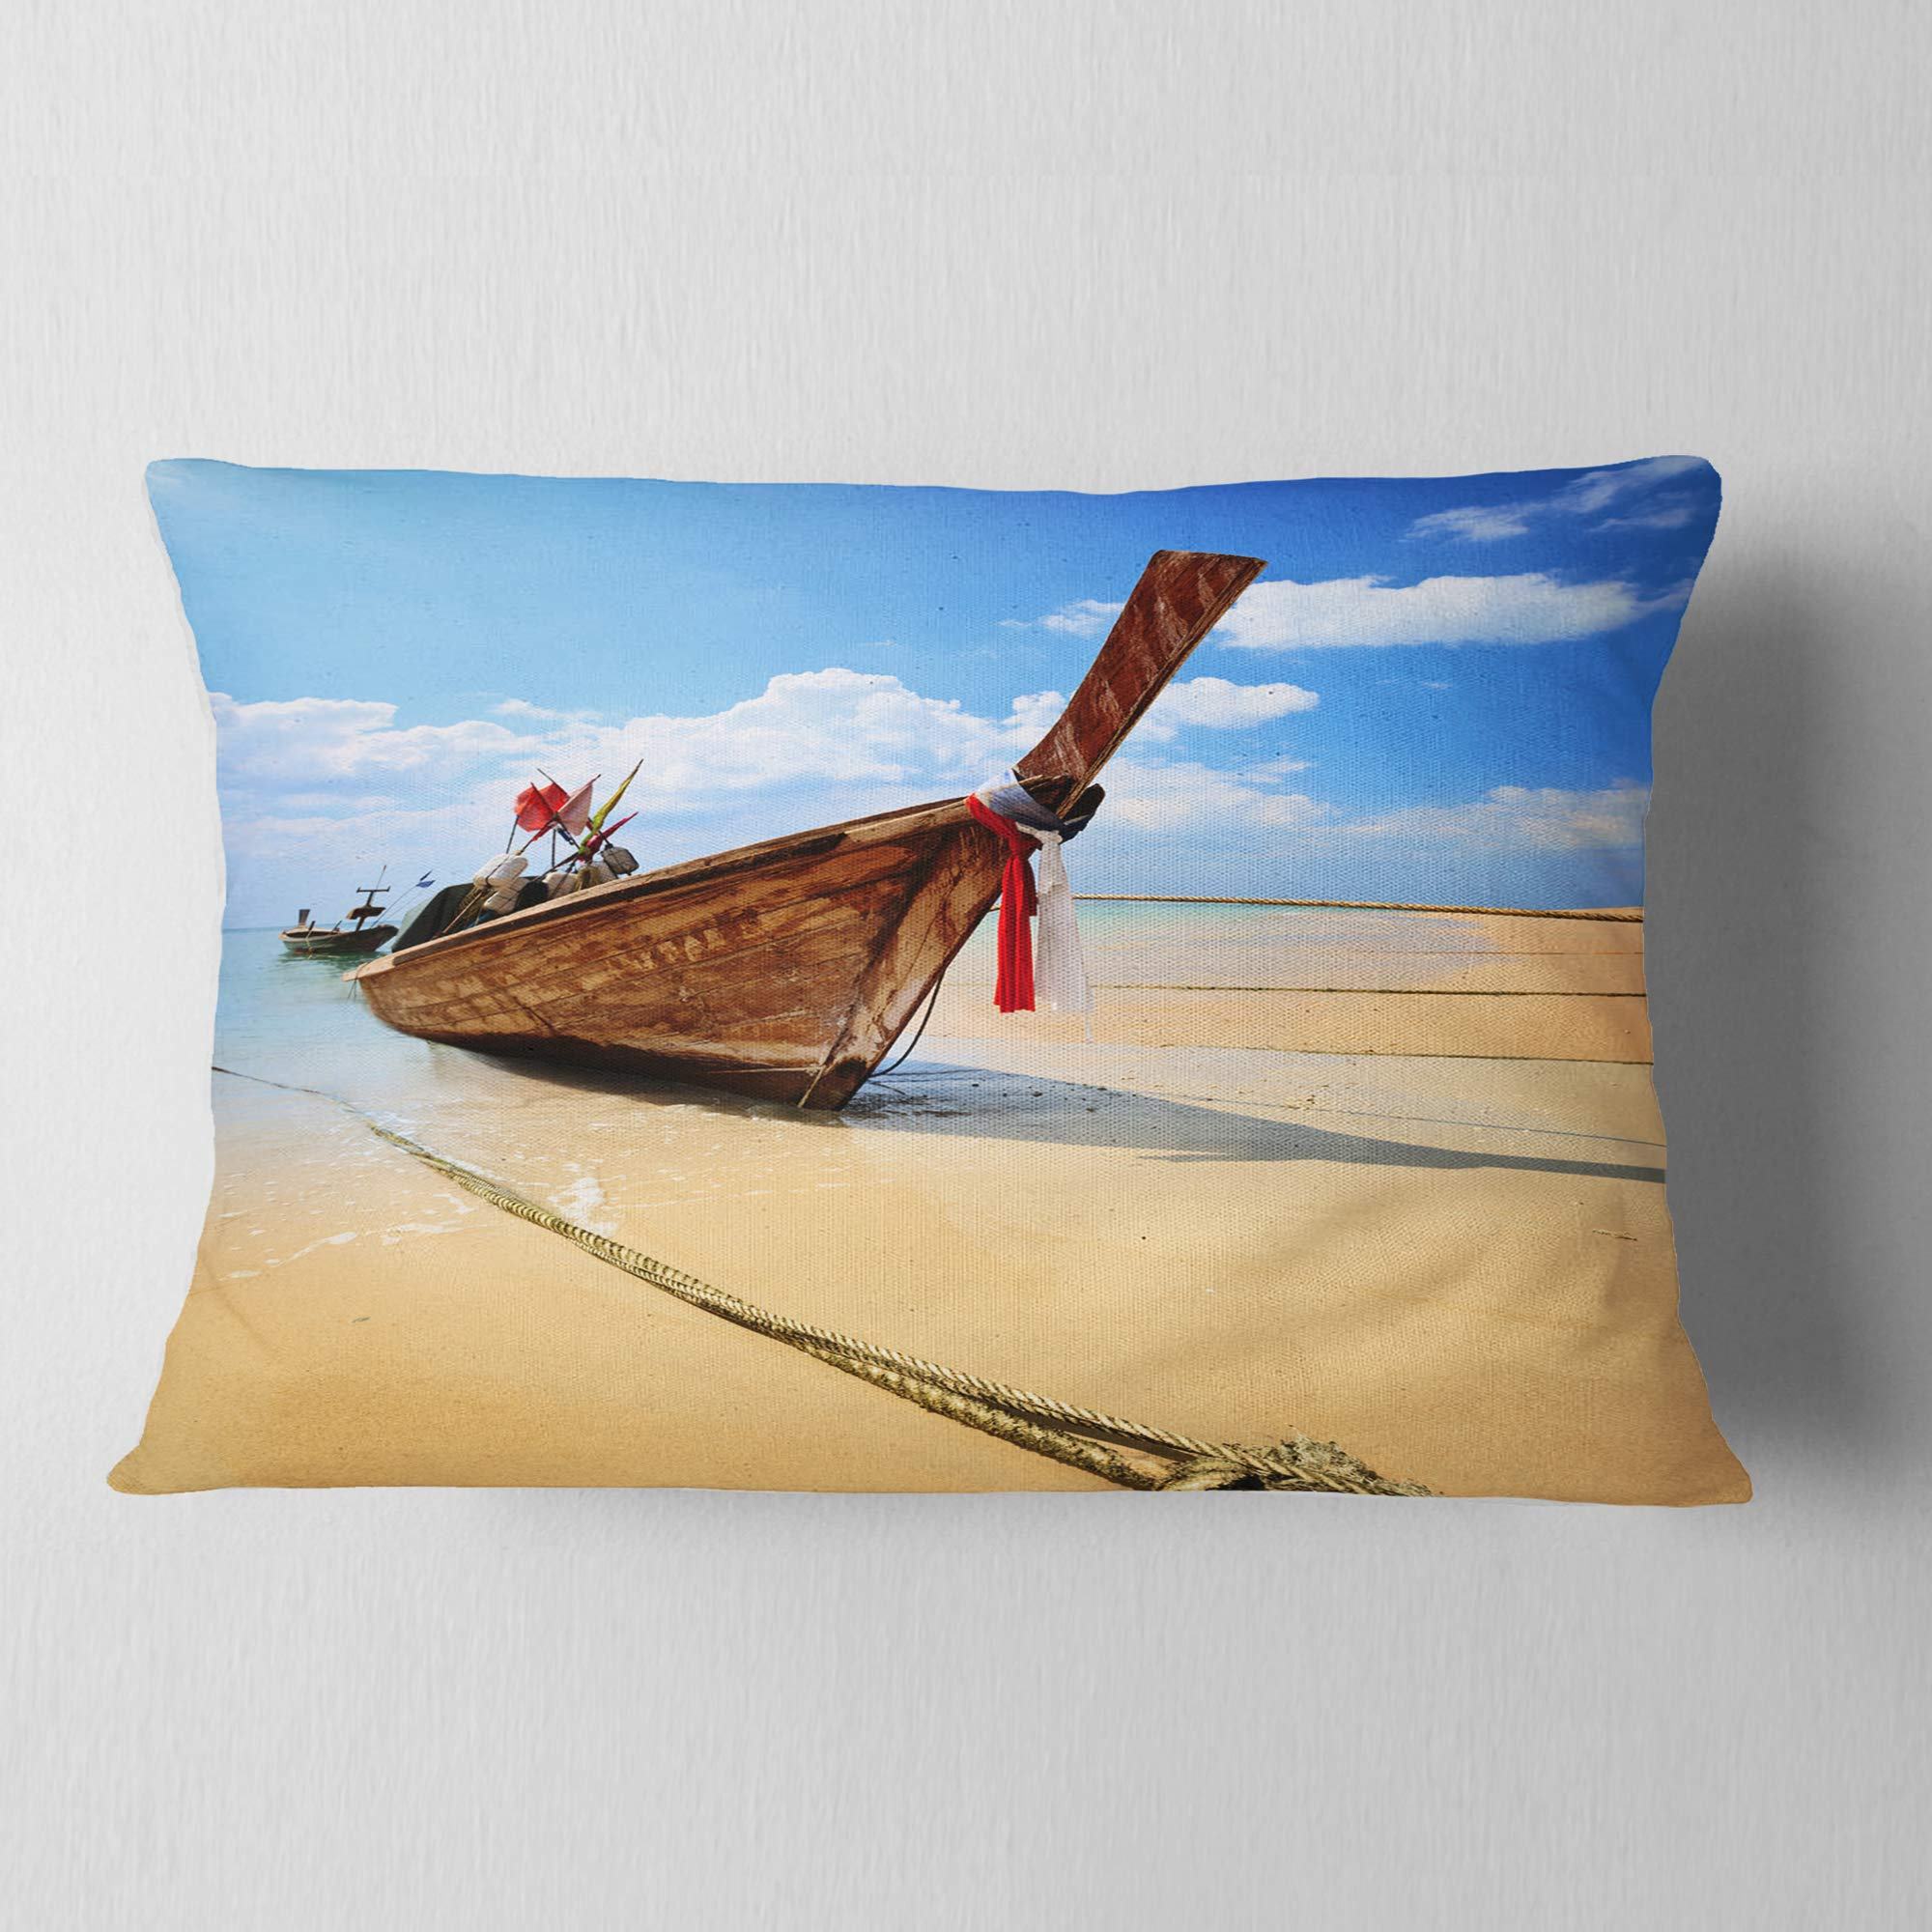 Designart CU8945-12-20 Thai Long Tail Boat' Beach and Shore Throw Lumbar Cushion Pillow Cover for Living Room, Sofa, 12 in. x 20 in.